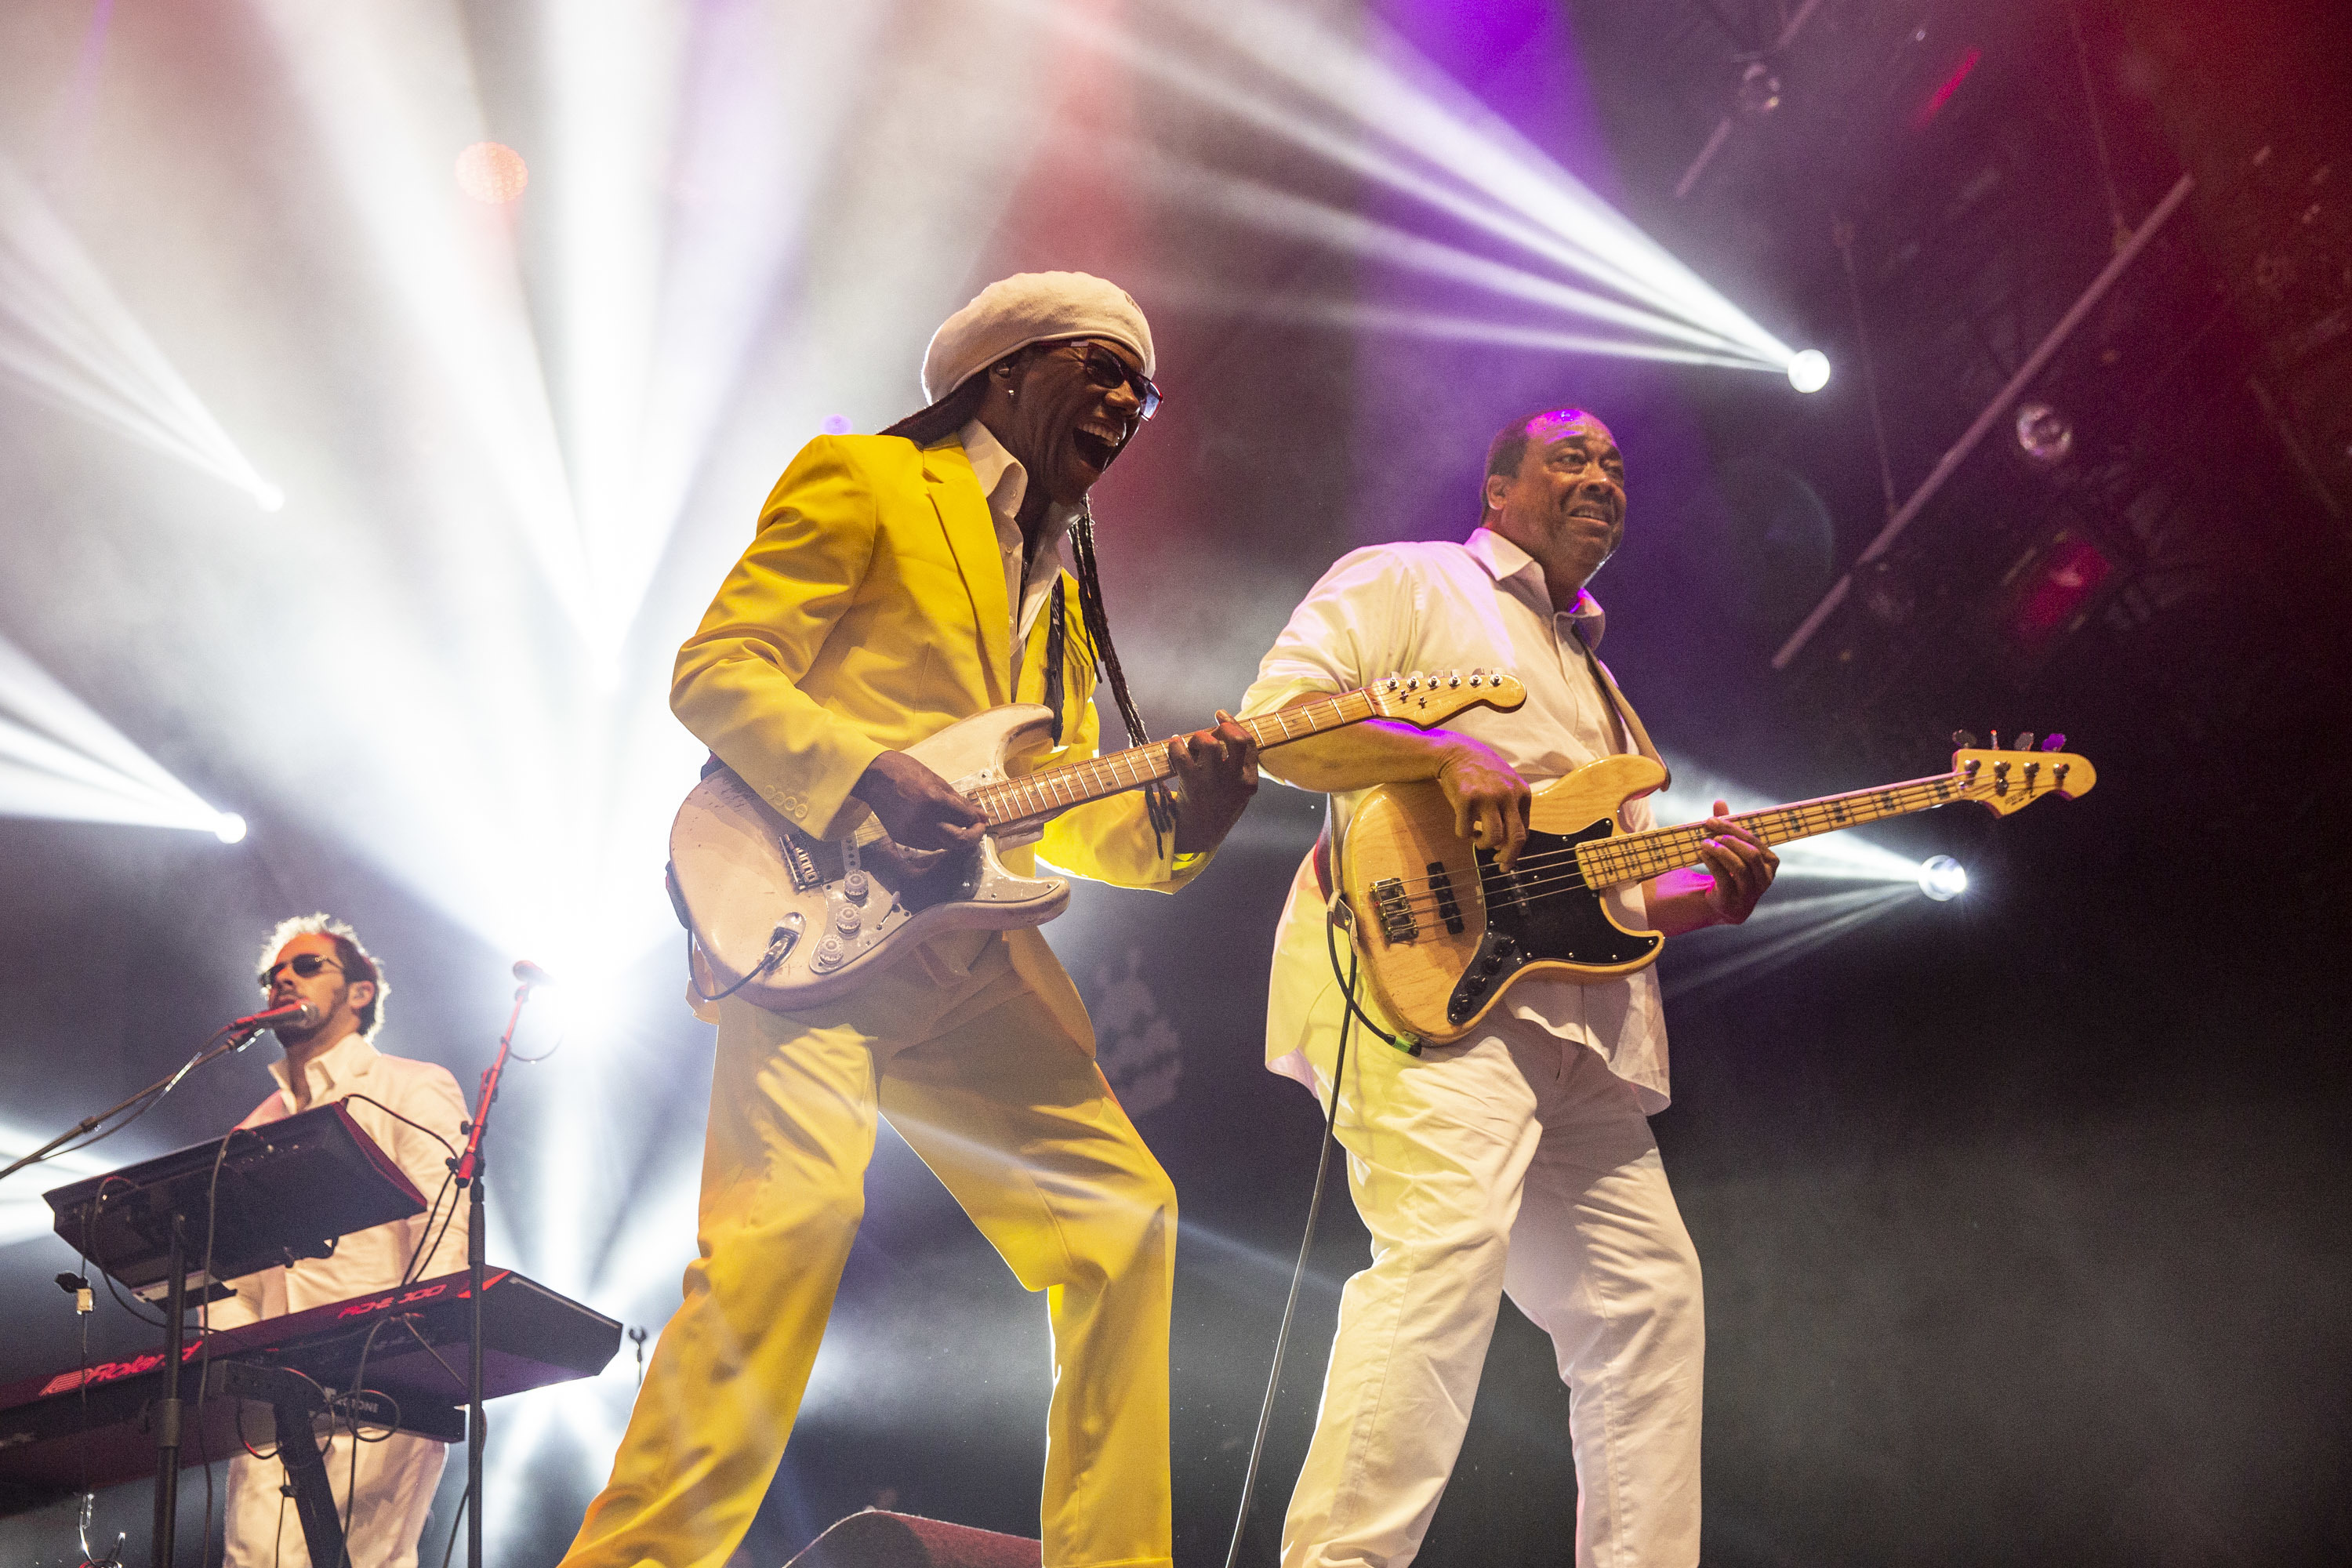 N*E*R*D, Nile Rodgers & Chic and Stormzy round-up day two of Lowlands 2018